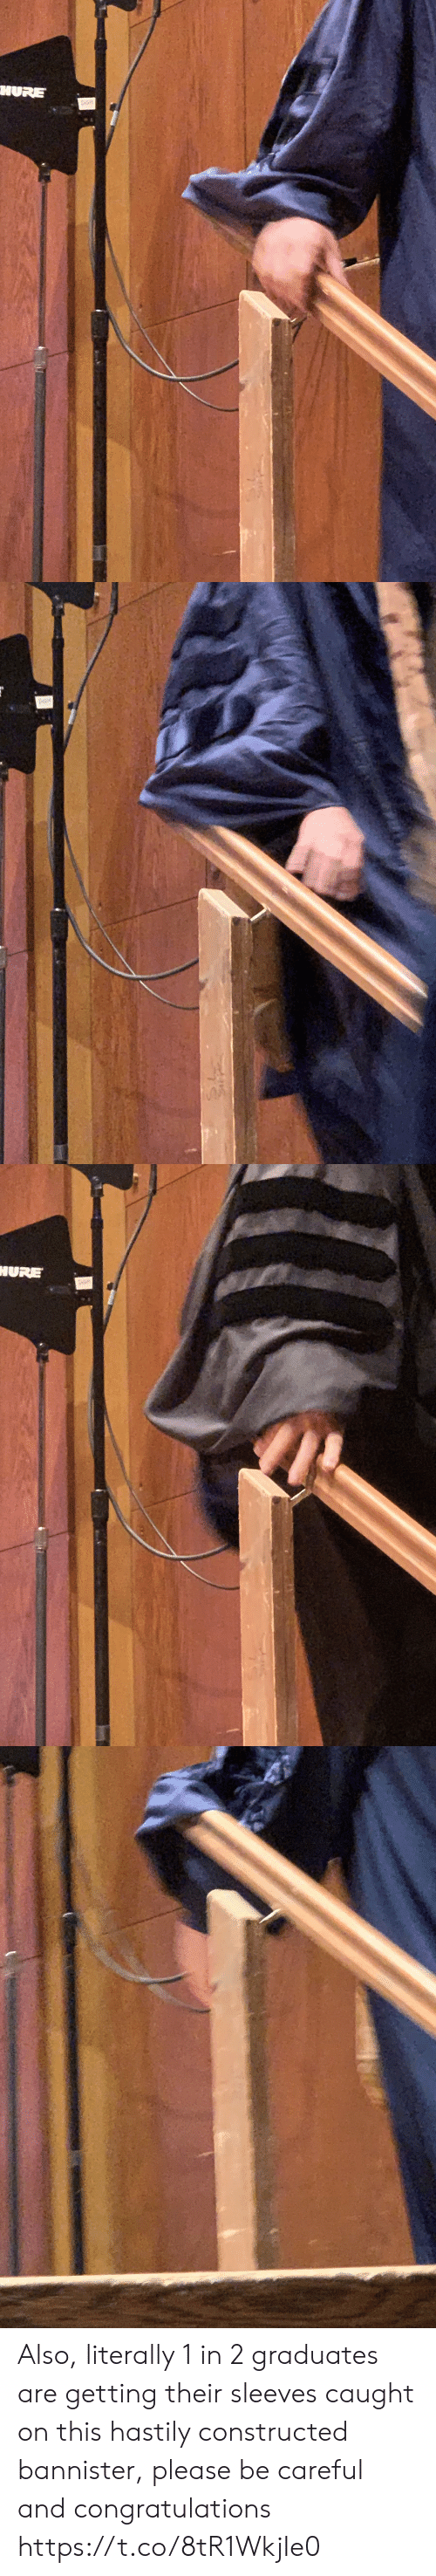 Memes, Congratulations, and Be Careful: HURE   HURE Also, literally 1 in 2 graduates are getting their sleeves caught on this hastily constructed bannister, please be careful and congratulations https://t.co/8tR1WkjIe0